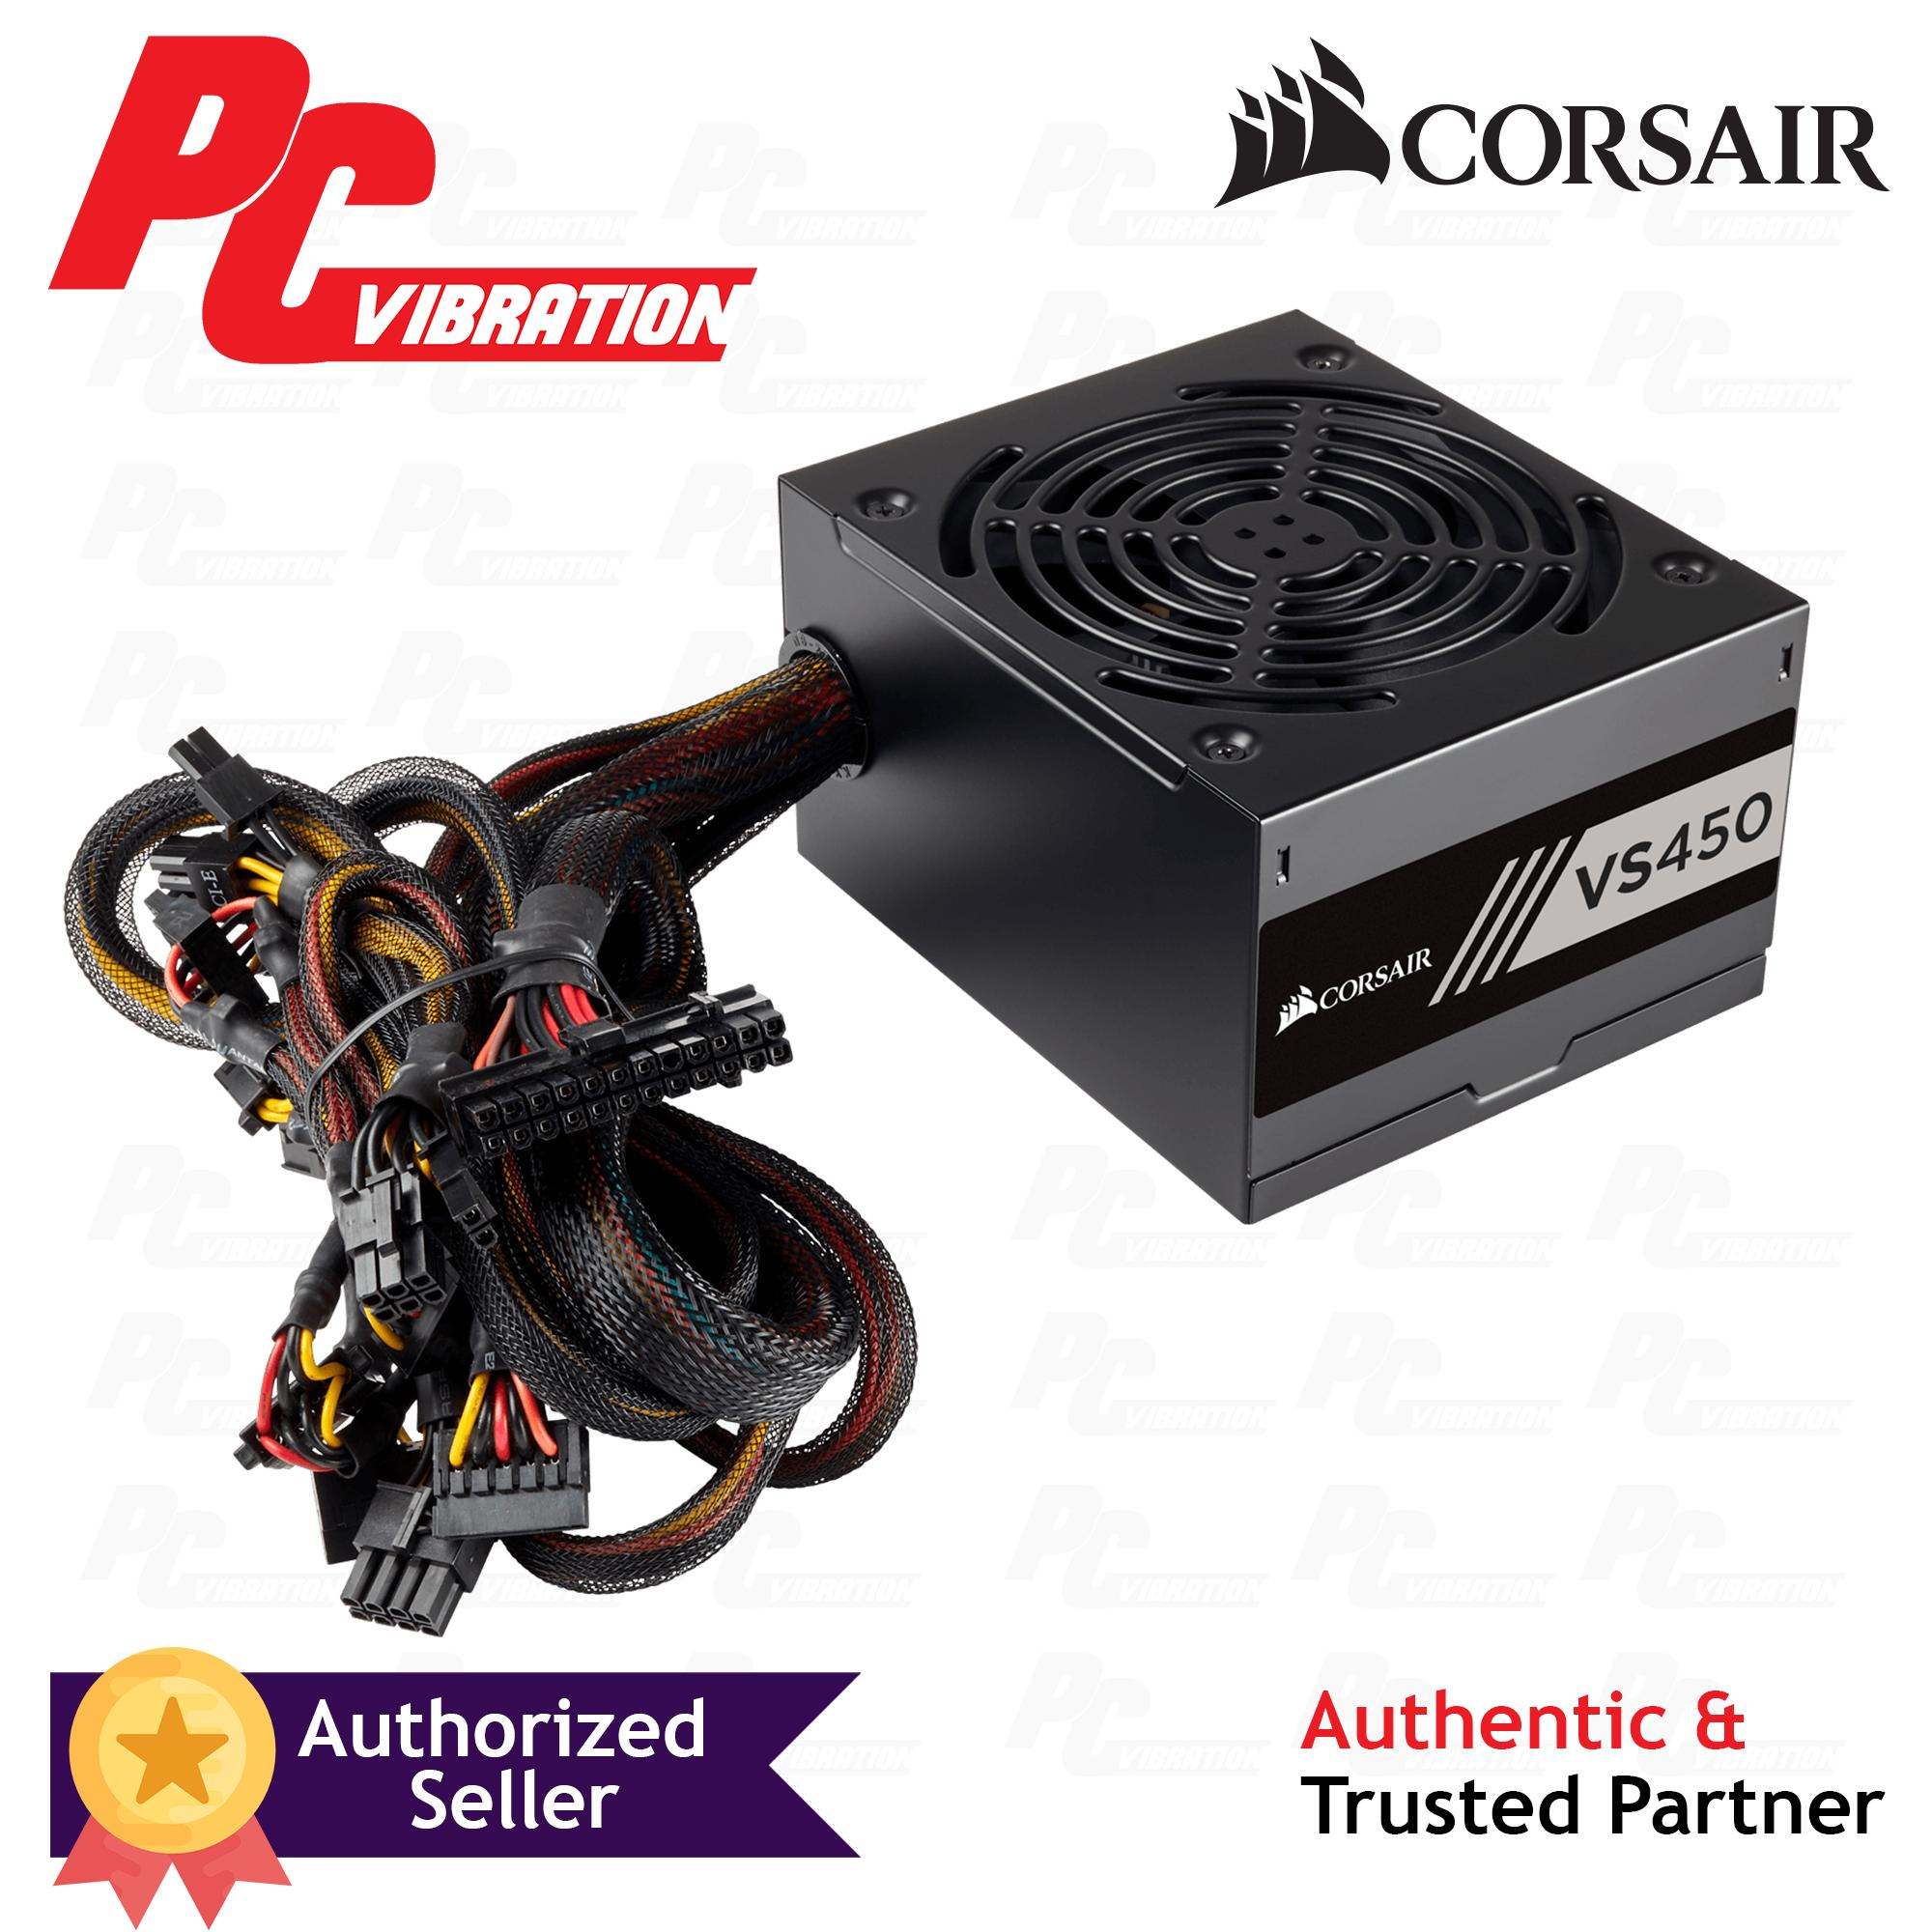 Pc Power Supply For Sale Computer Prices Brands 138v 40a Stabilized Corsair Vs Series Vs450 450 Watt 80 Plus White Certified